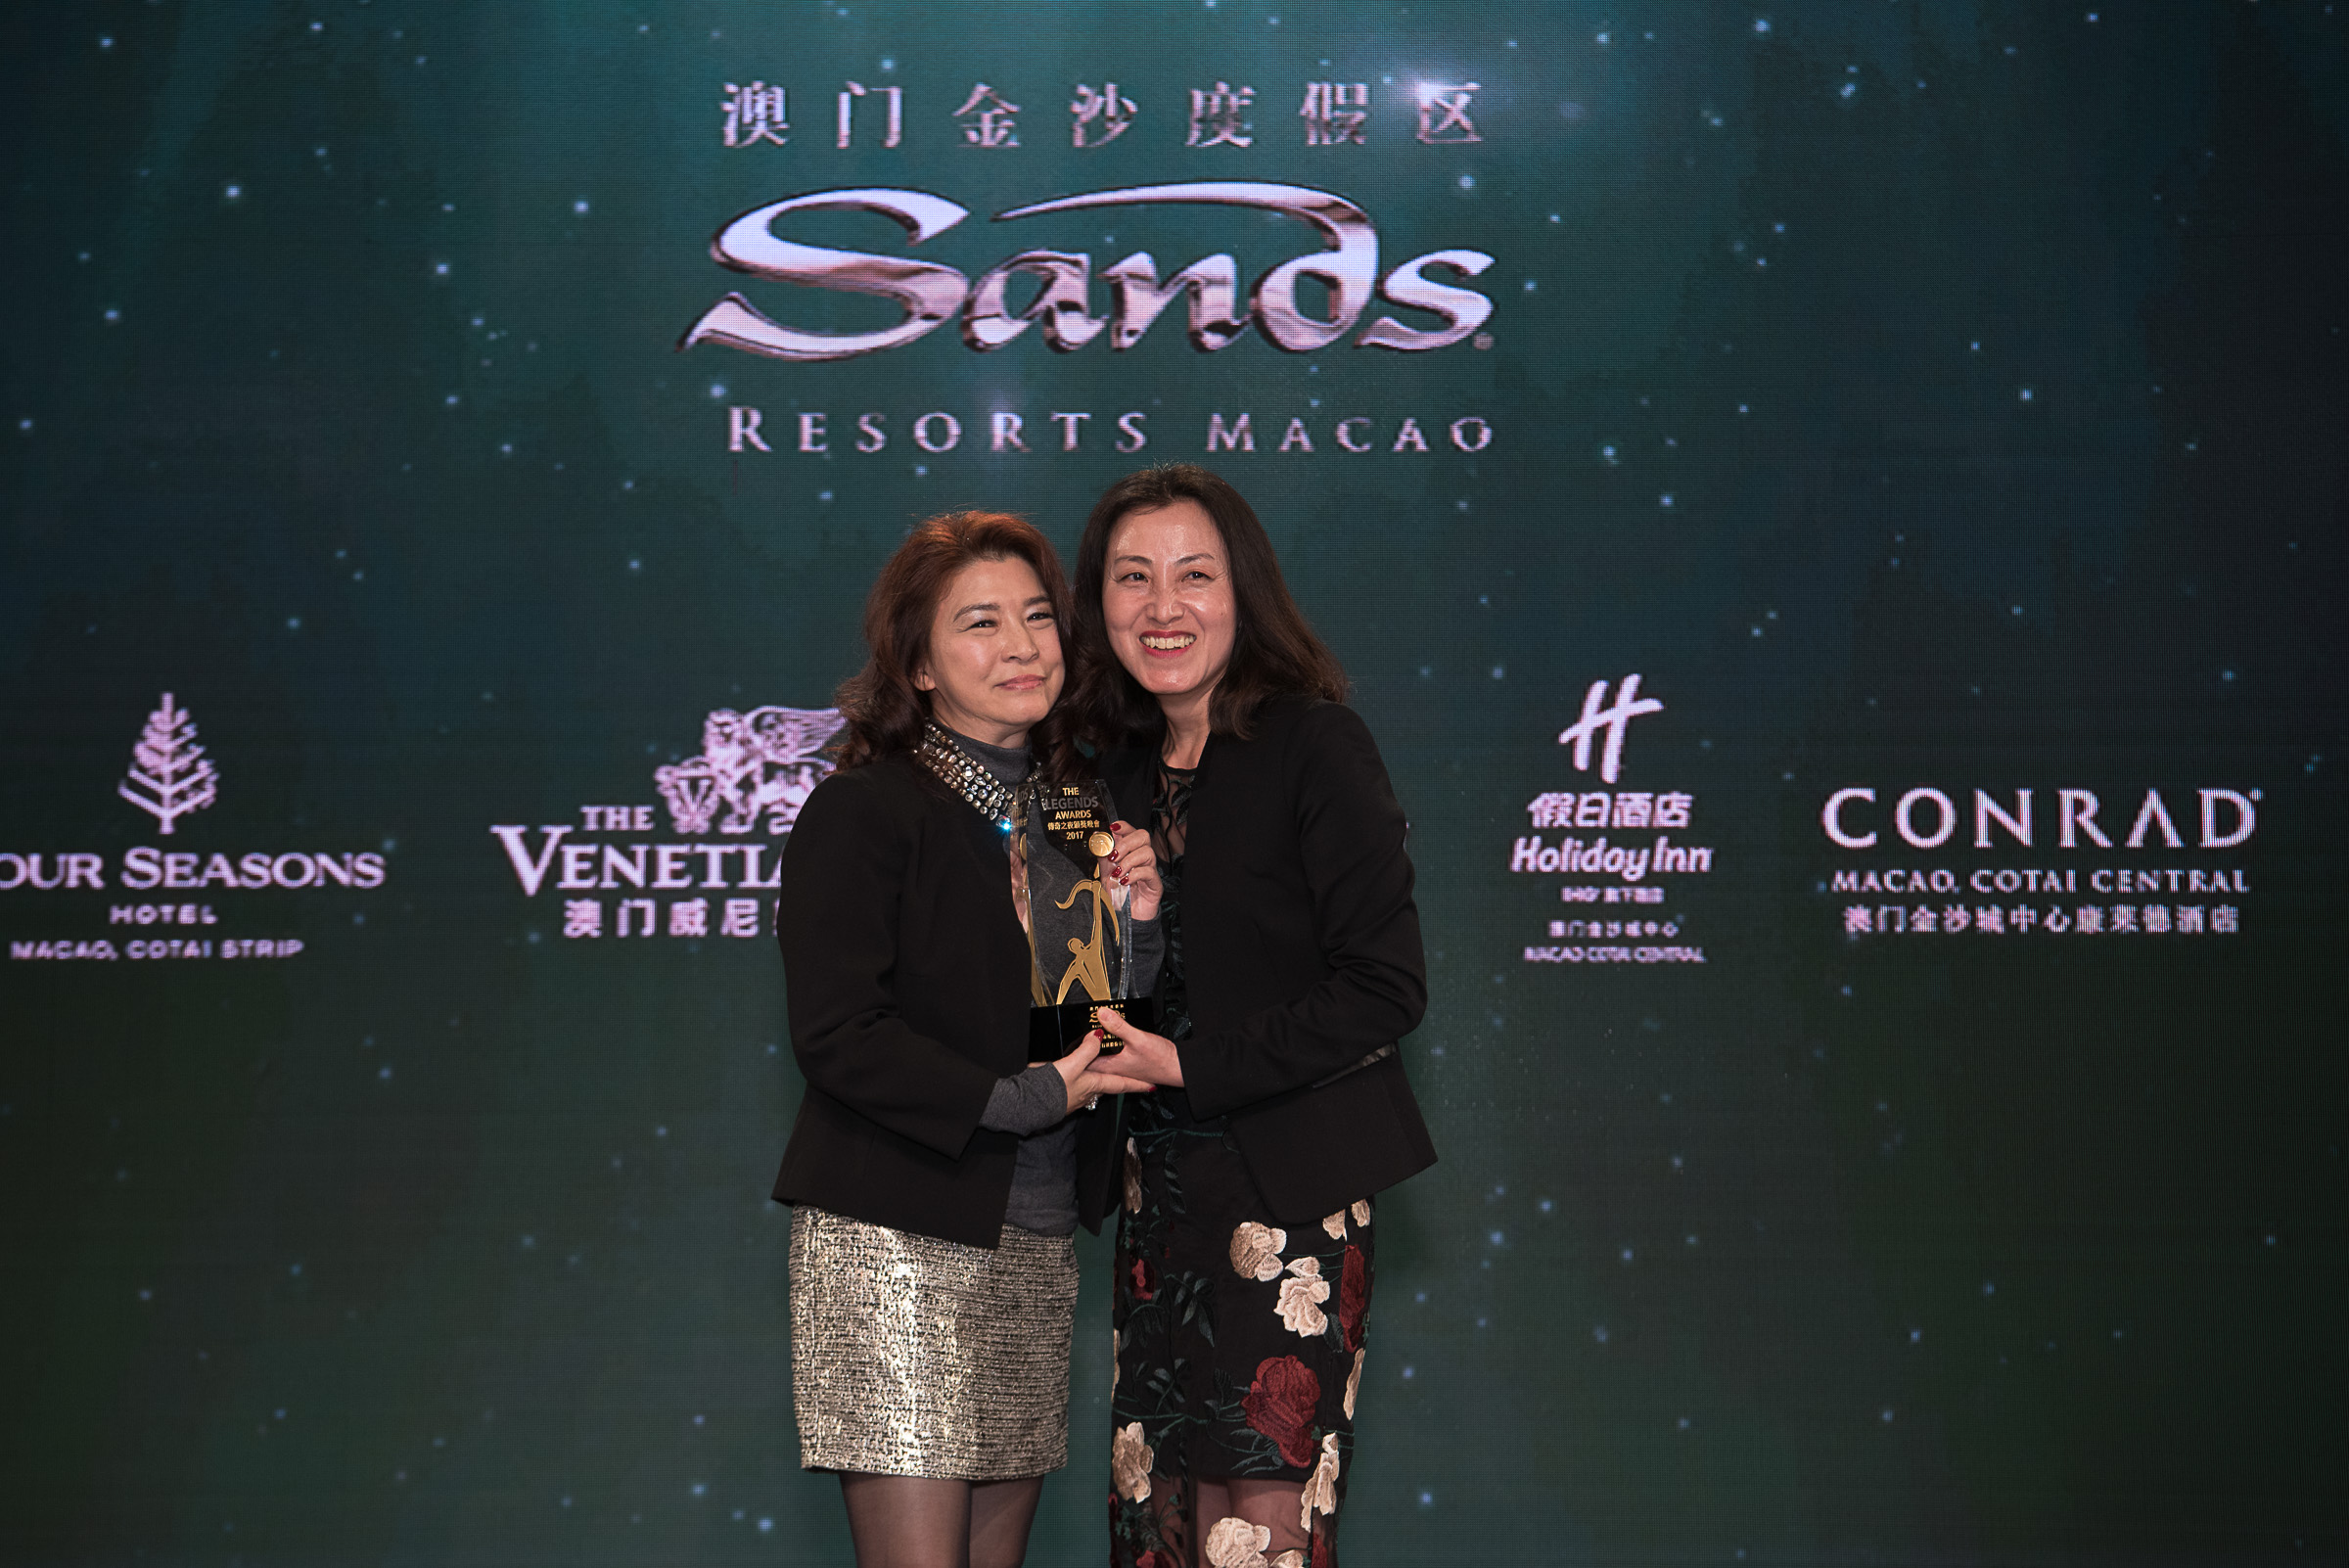 Melchers Travel Co., Ltd. scooped 'Trade Partner of the Year – MICE